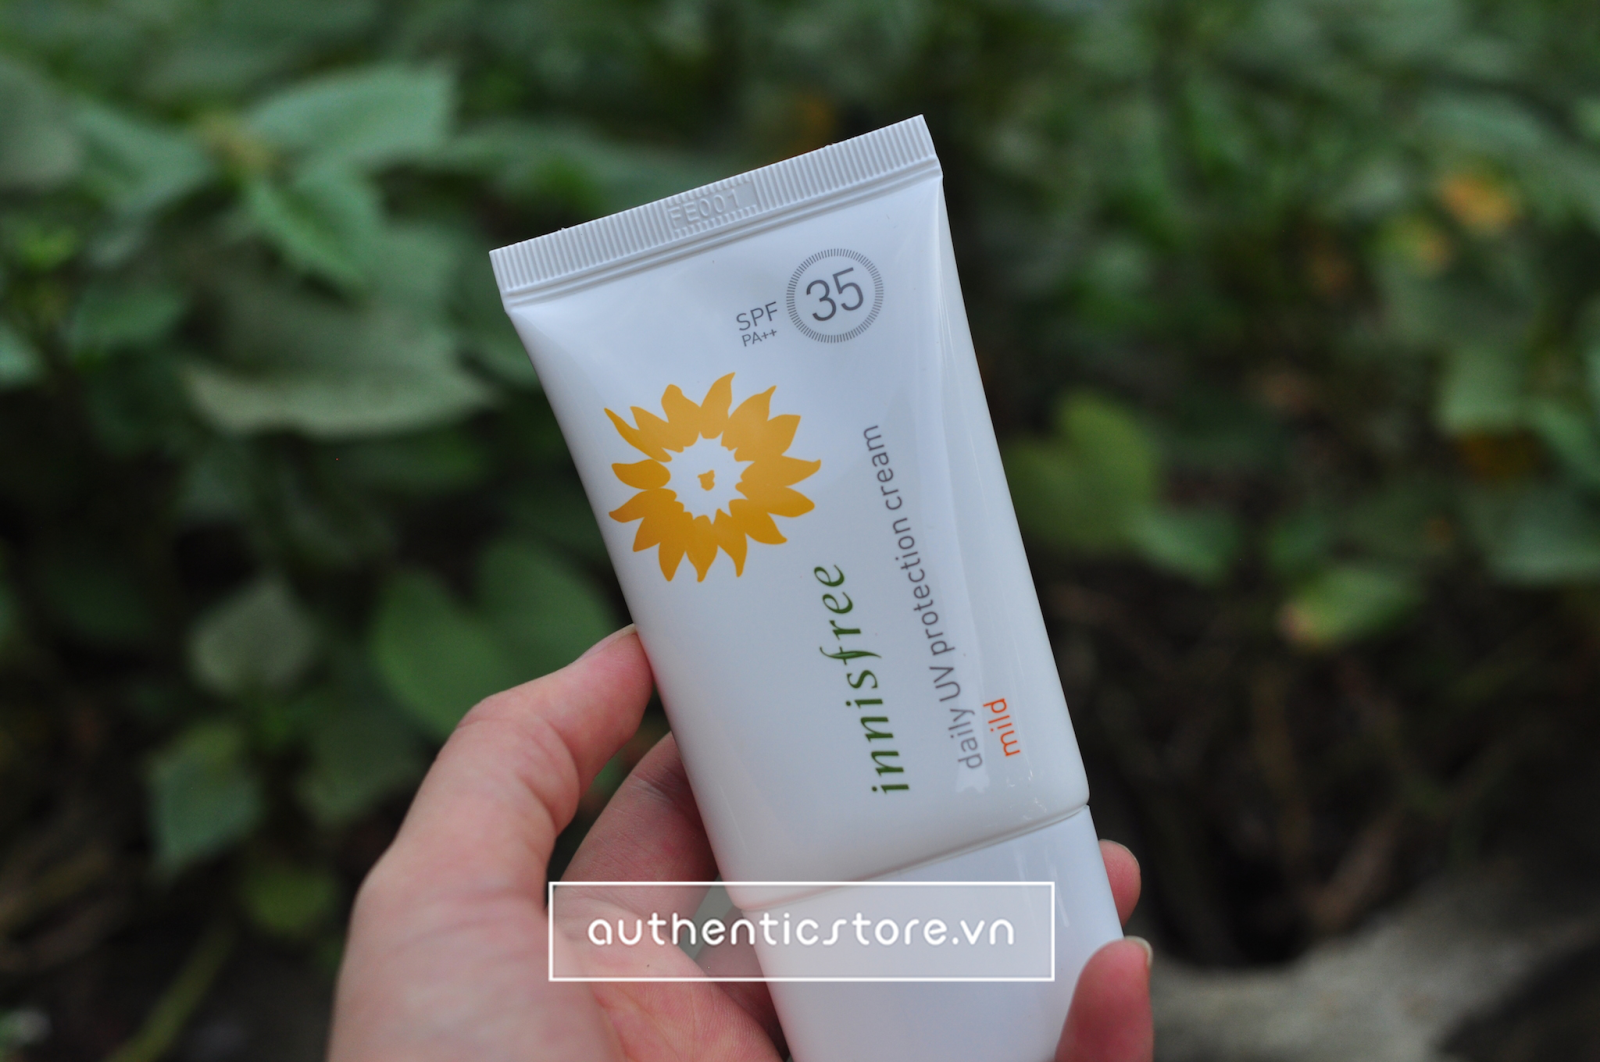 Kem chống nắng Innisfree Daily UV protection SPF 35